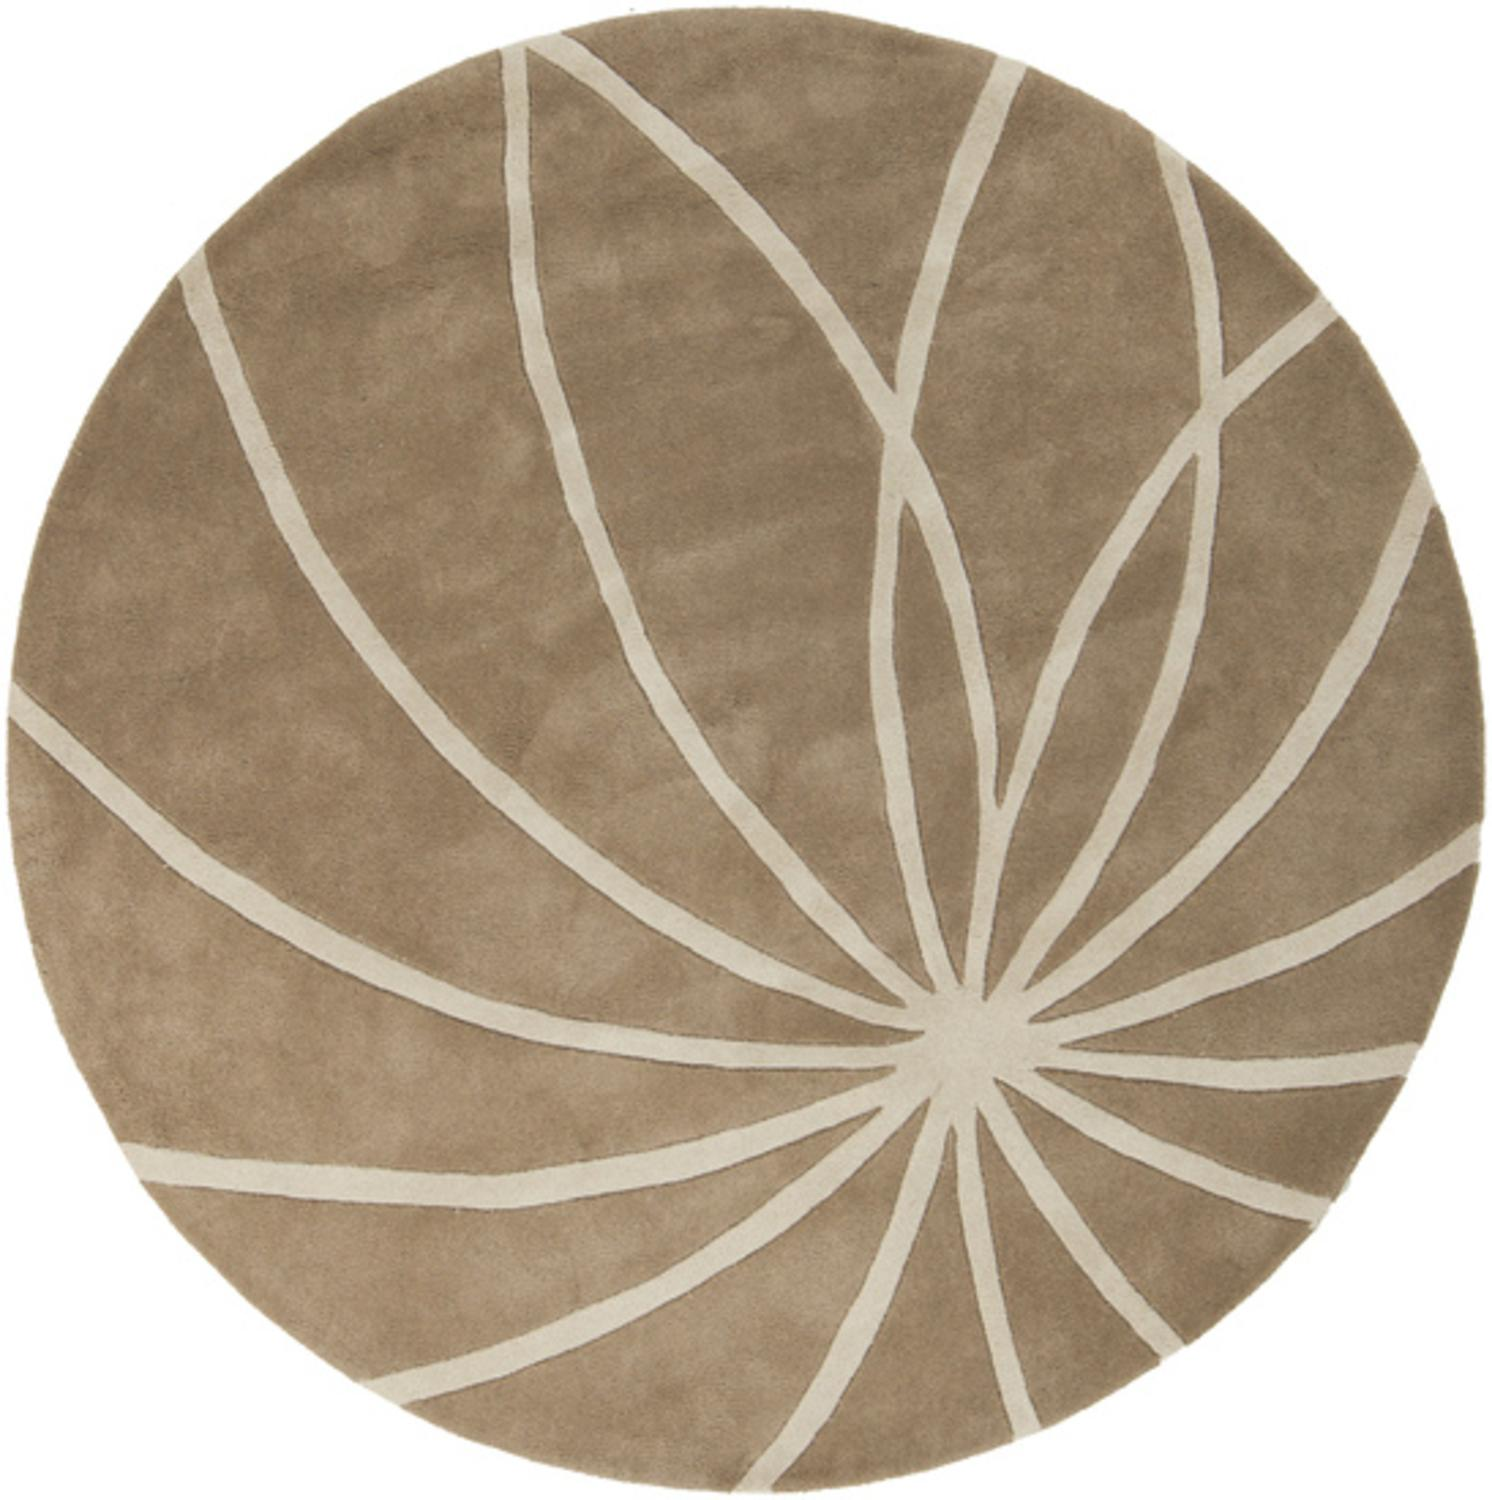 6' Plasma Elektra White and Safari Tan Hand Tufted Wool Round Area Throw Rug